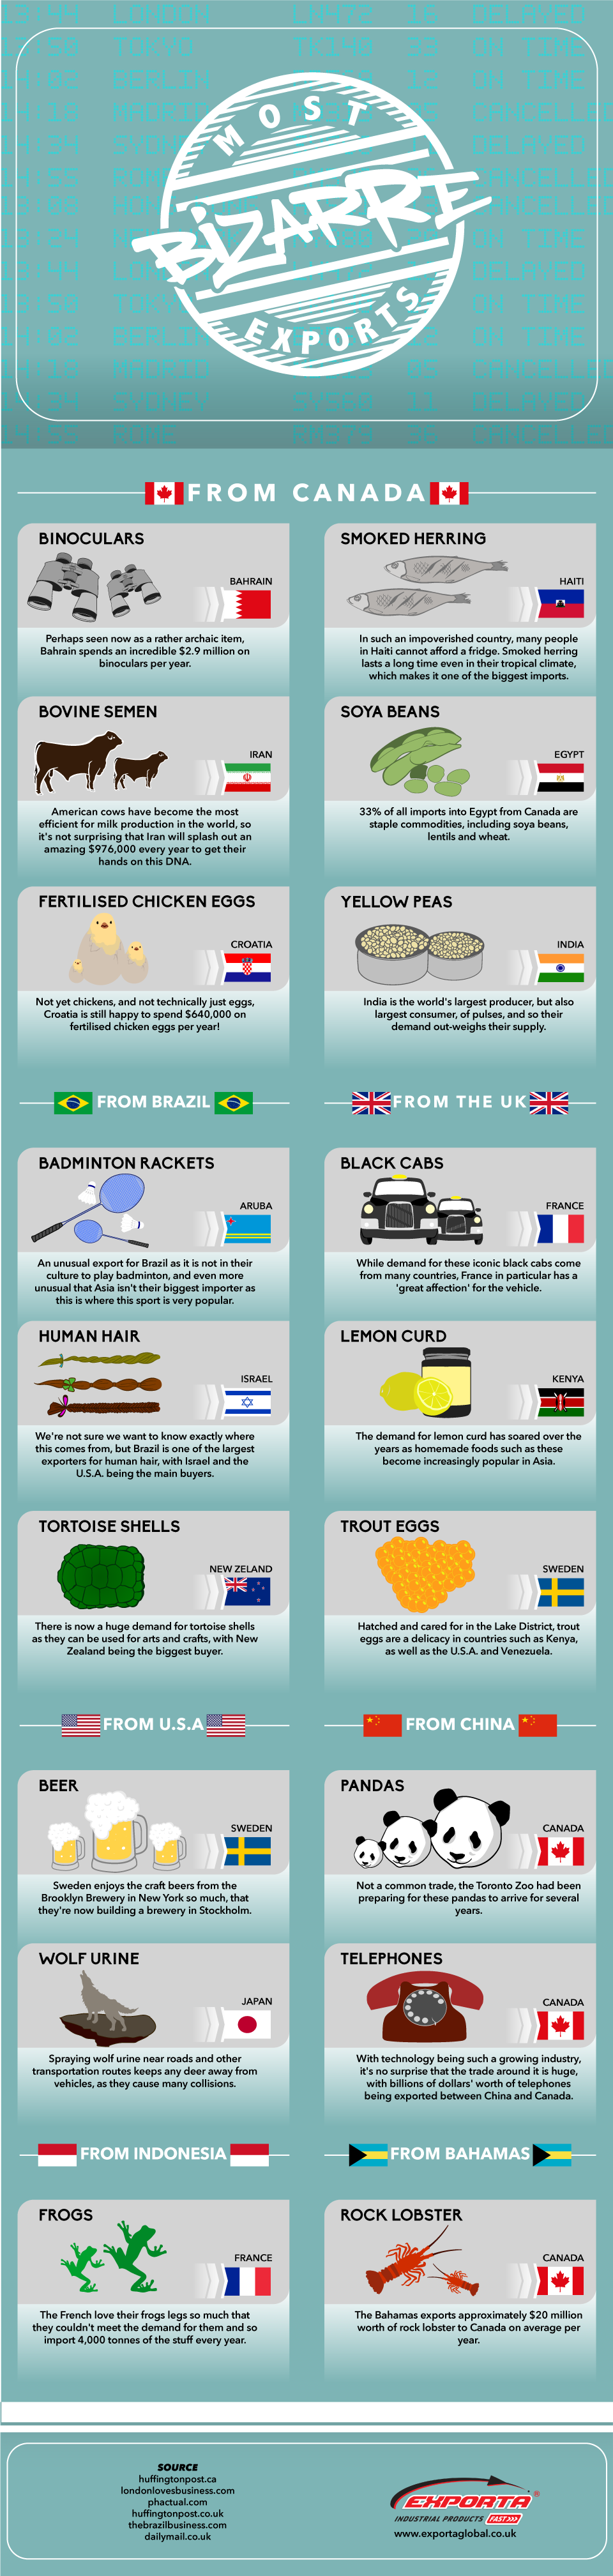 Most Bizarre Exports #Infographic